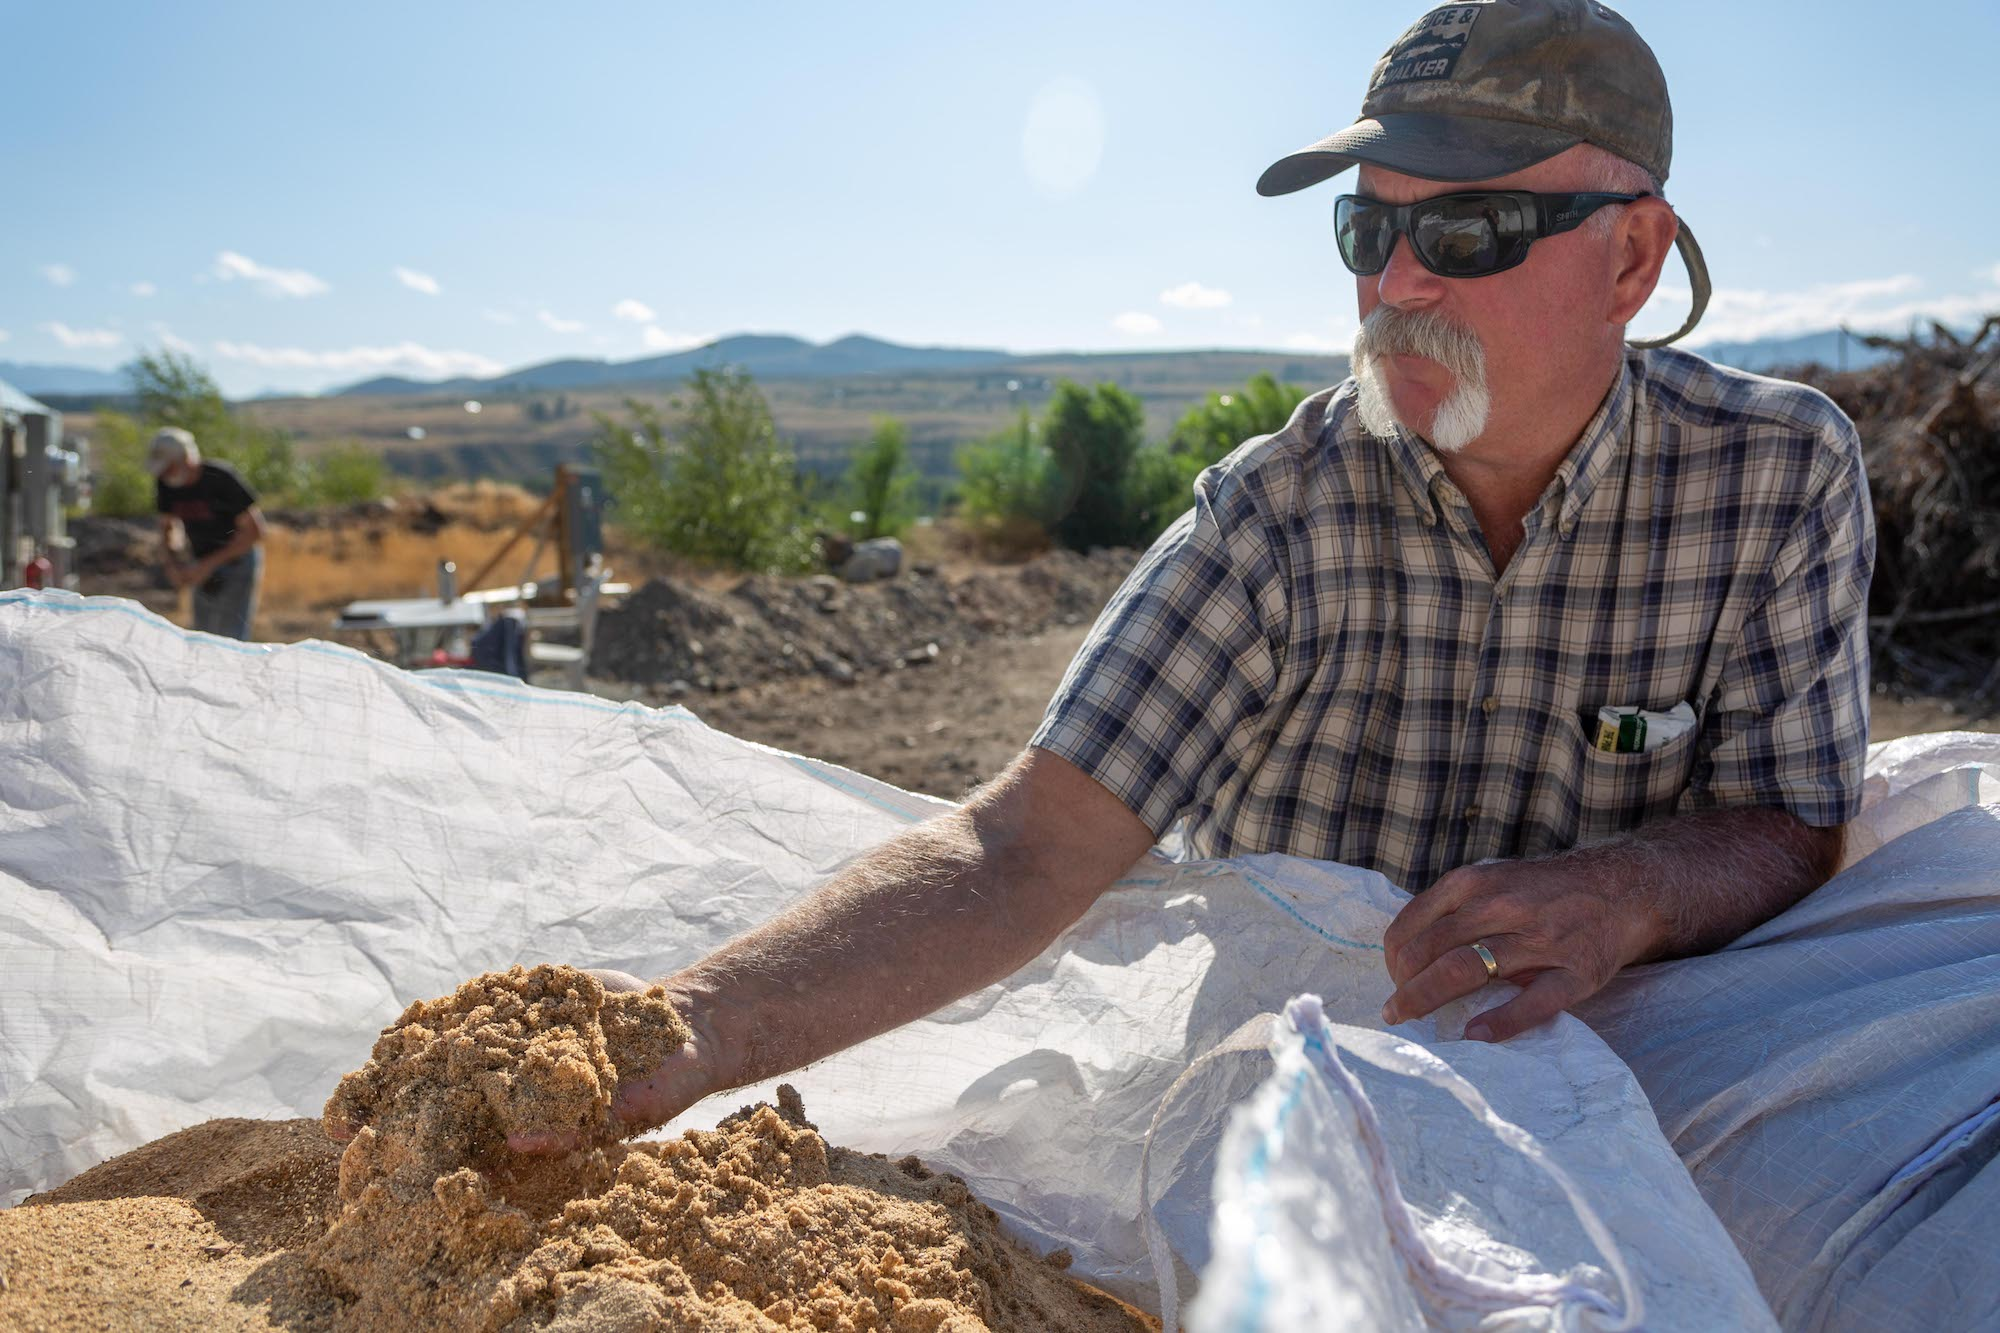 An older man wearing a plaid shoe-sleeved plaid shirt, sunglasses and a cap holds sawmill dust in his left hand. Behind him, a blue sky and a young forest let you see a mountain range rising in the horizon.